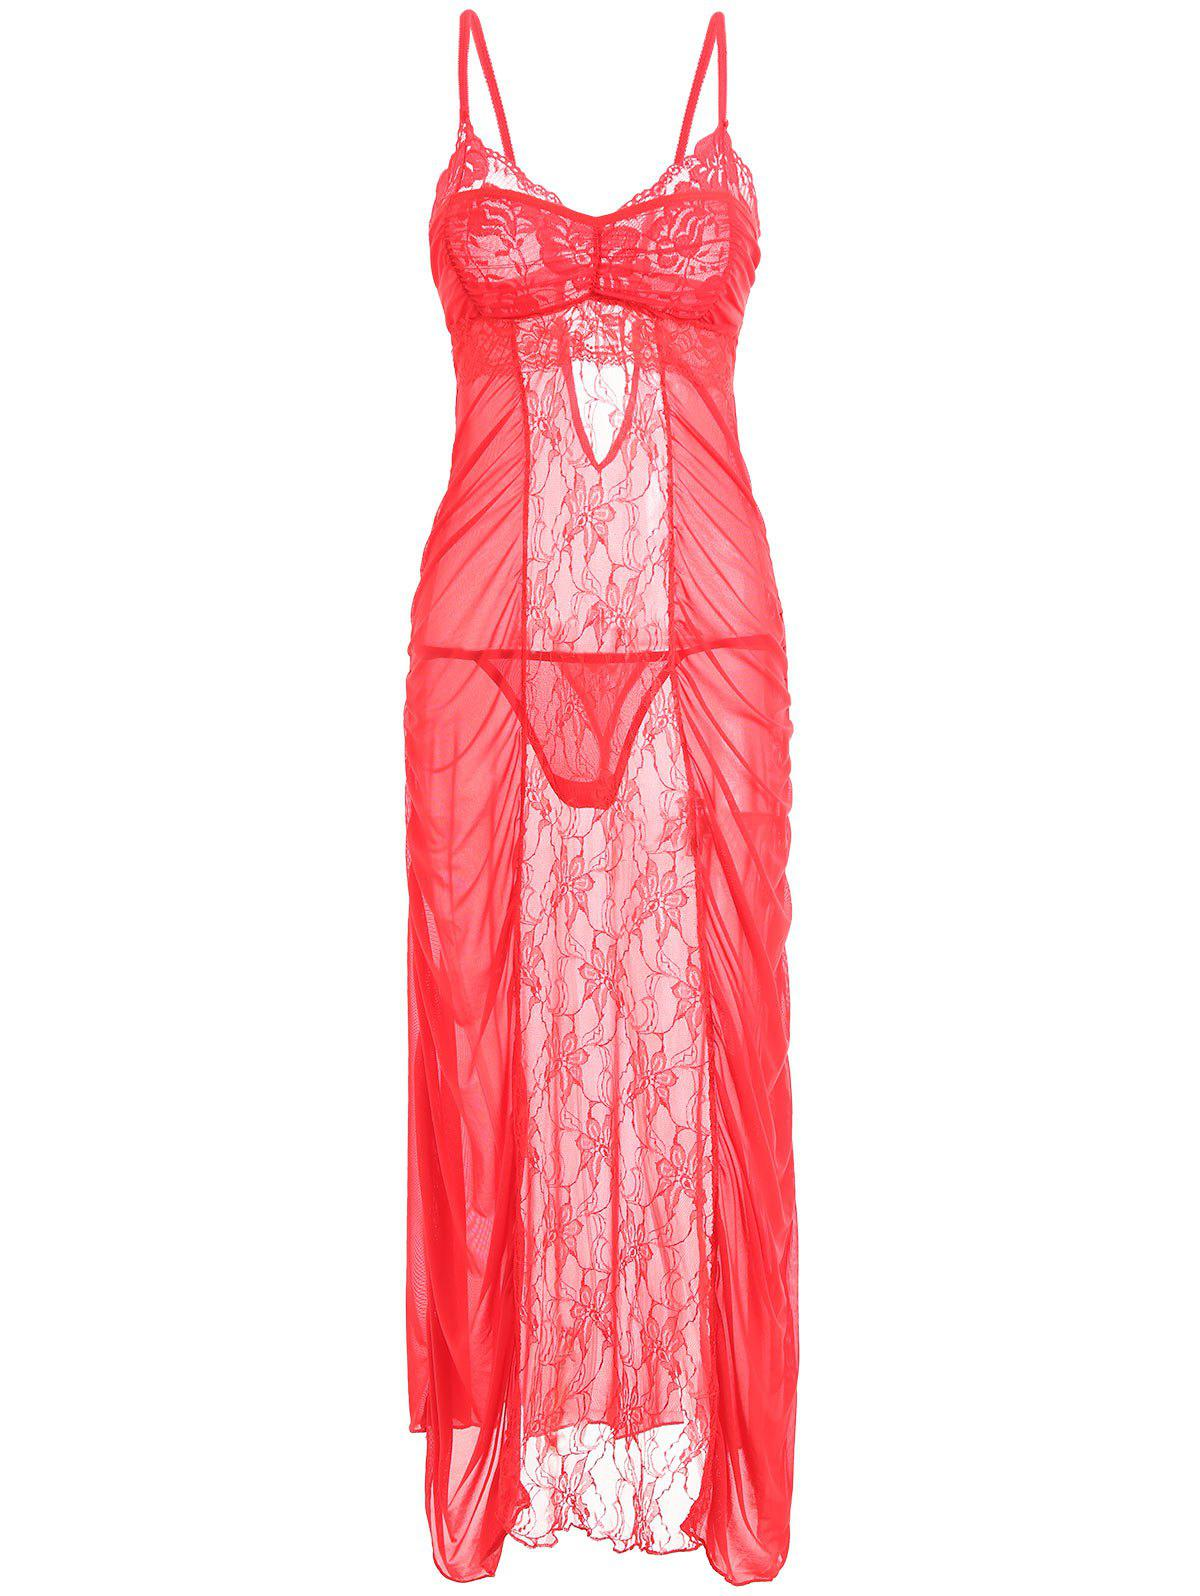 Ruched Lace Mesh Long Slip Dress - RED ONE SIZE